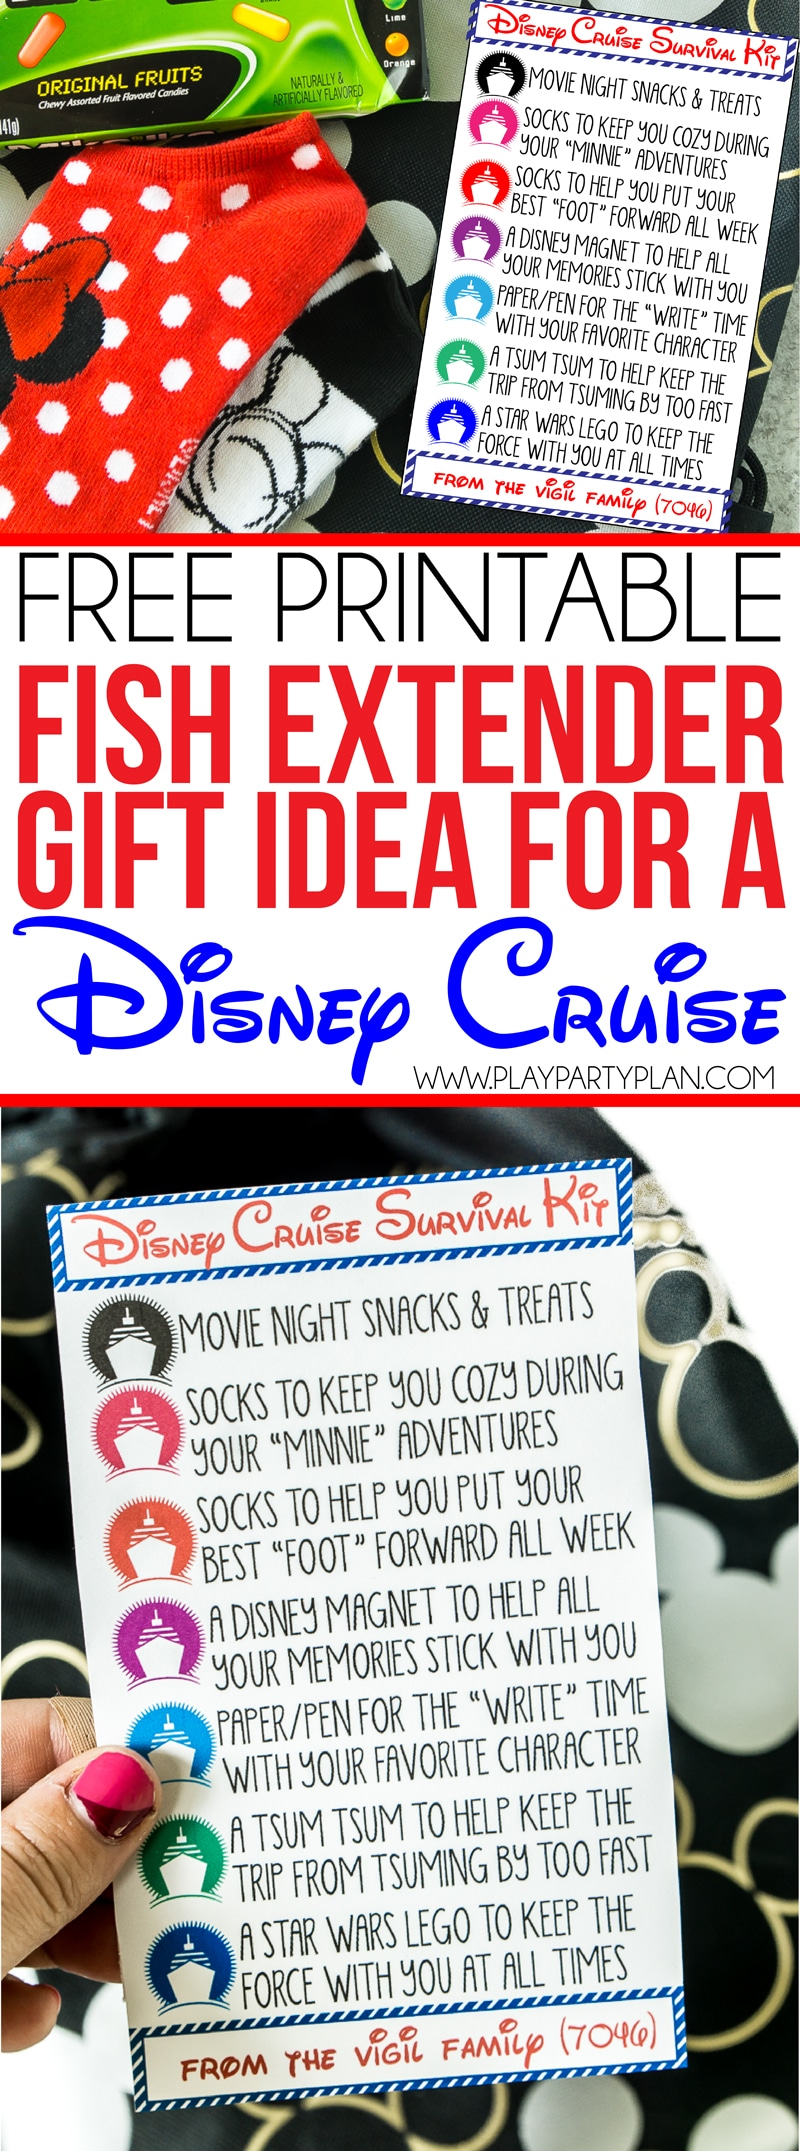 These DIY fish extender gifts are the cutest and so unique! Simply print out the tag, purchase the items that go in the survival kit, and you have an easy idea that works great for adults, for teens, for men, for women, for girls, for boys, and everyone in between. Or skip the survival kit and break the ideas into a cheap alternative with just one of the gifts! via @playpartyplan